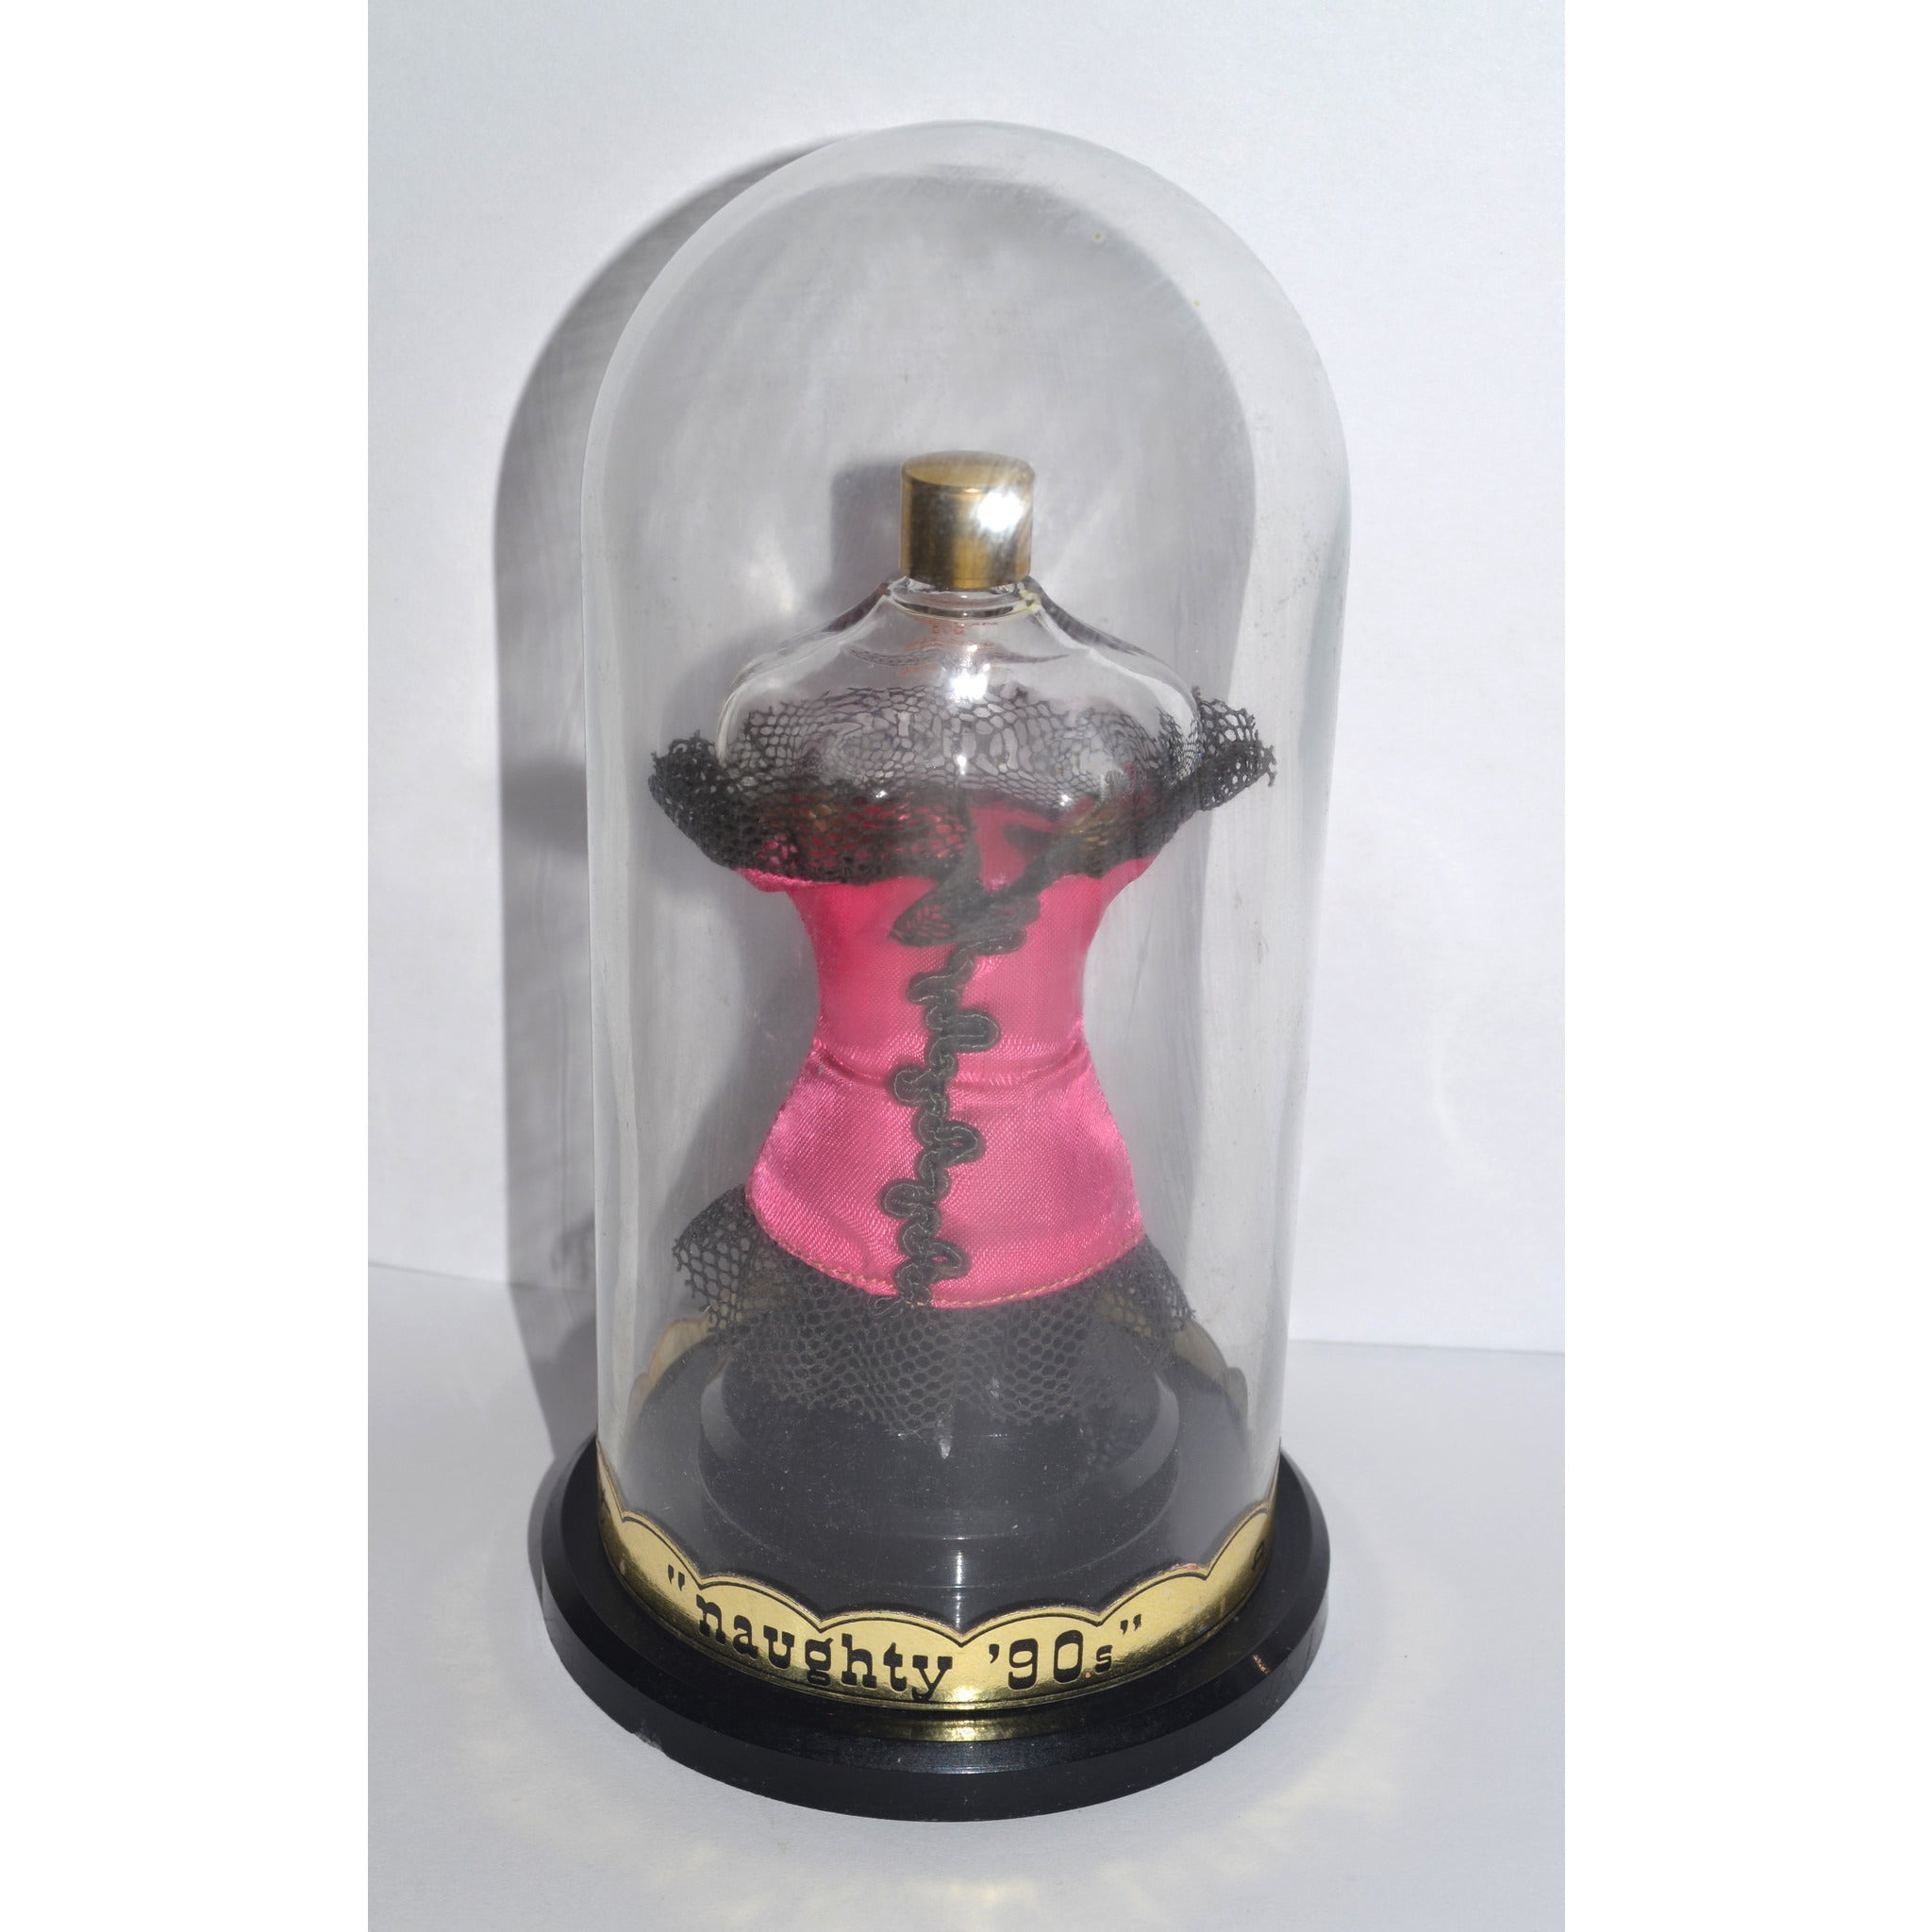 Vintage Naughty 90's Perfume Bottle By Milart